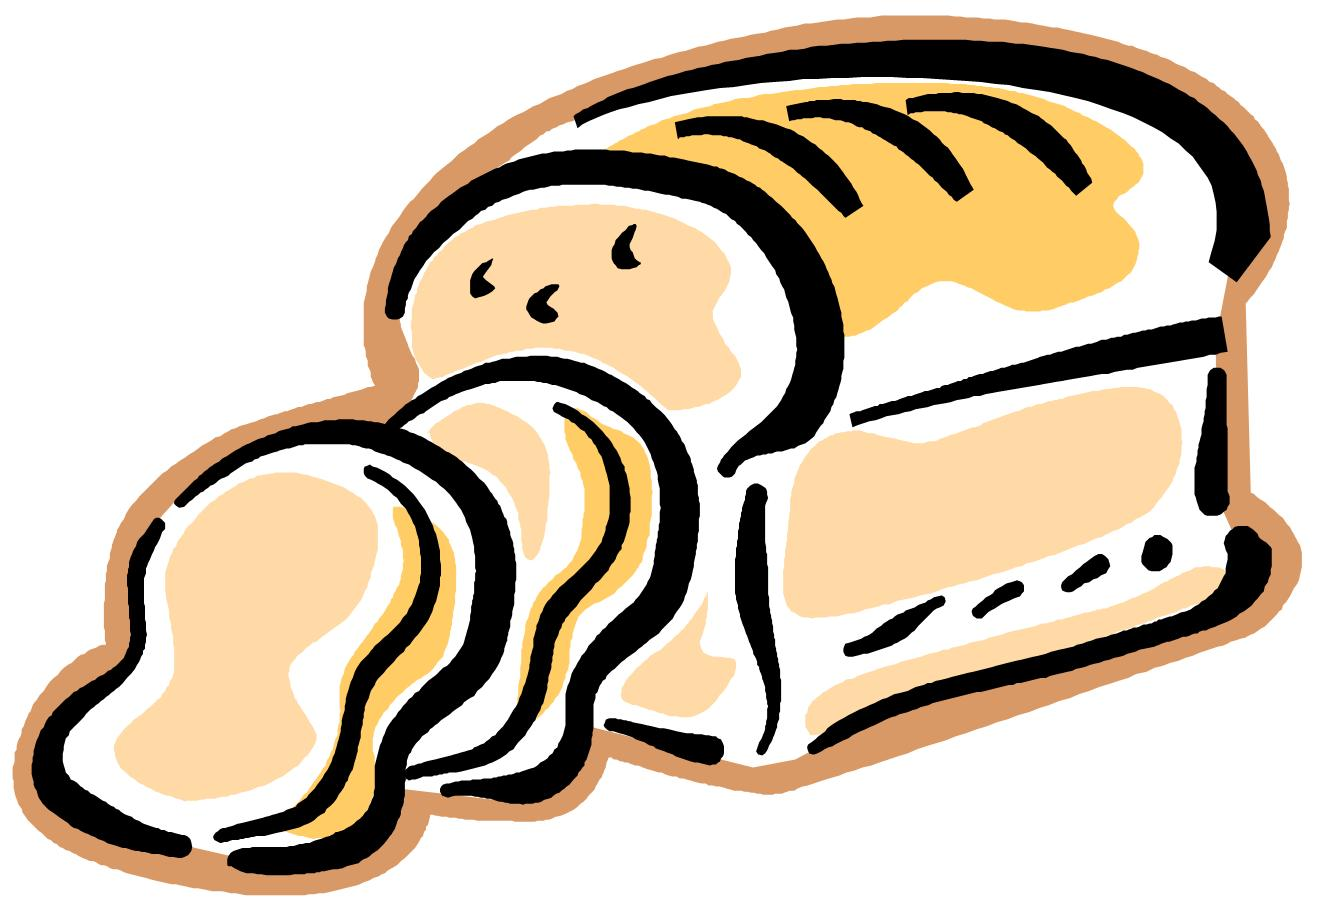 Loaf of bread clipart